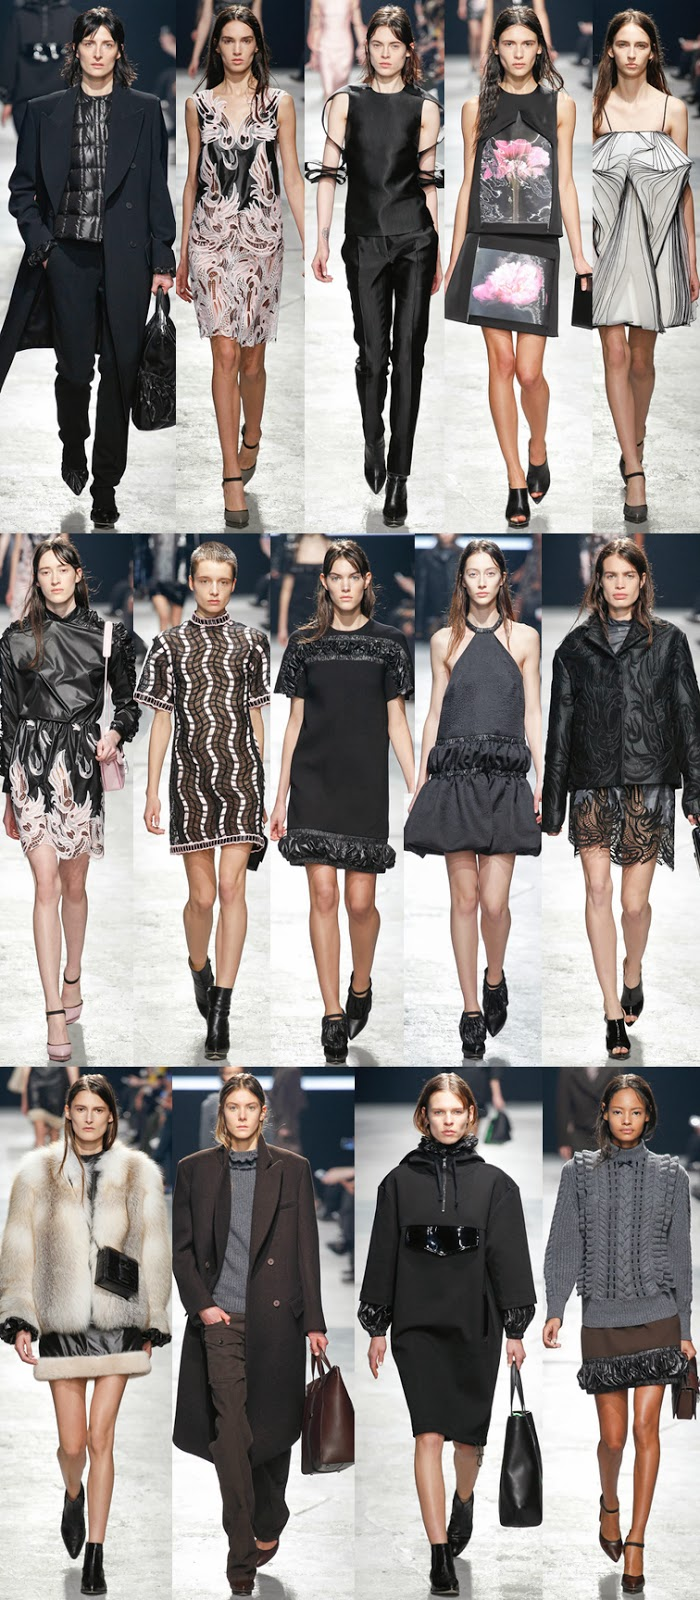 Christopher Kane fall winter 2014 runway collection, FW14, AW14, LFW, London fashion week